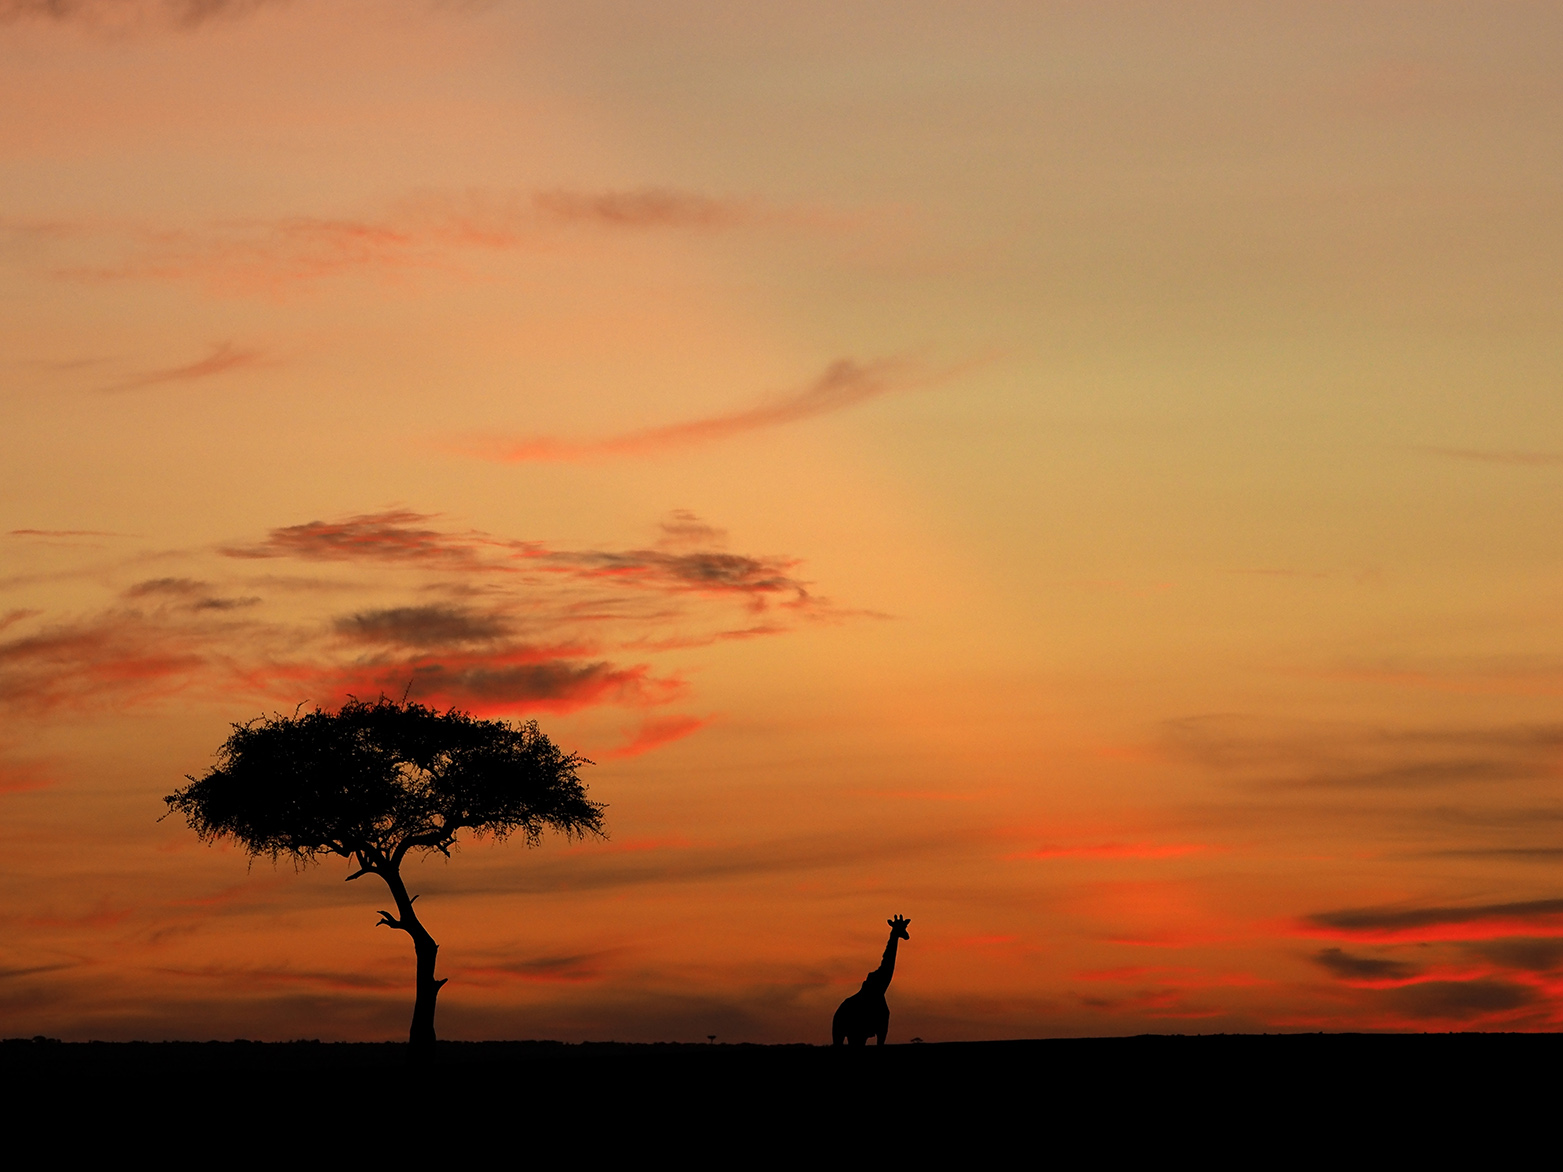 Landscapes in the wild by Ranjan